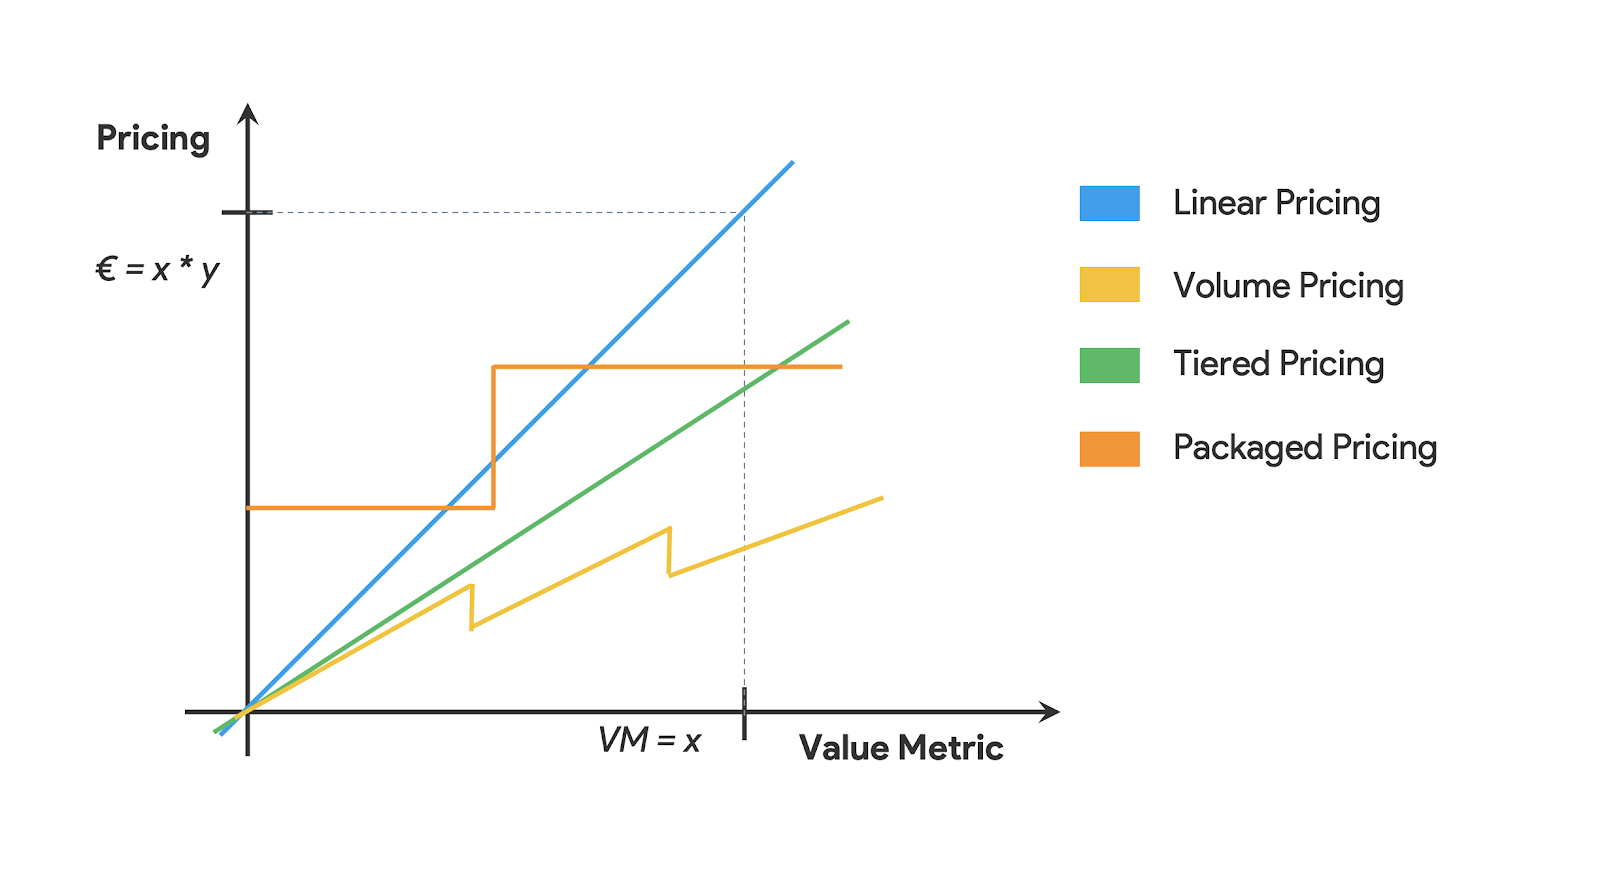 Linear, Packaged, Tiered and Volume Pricing